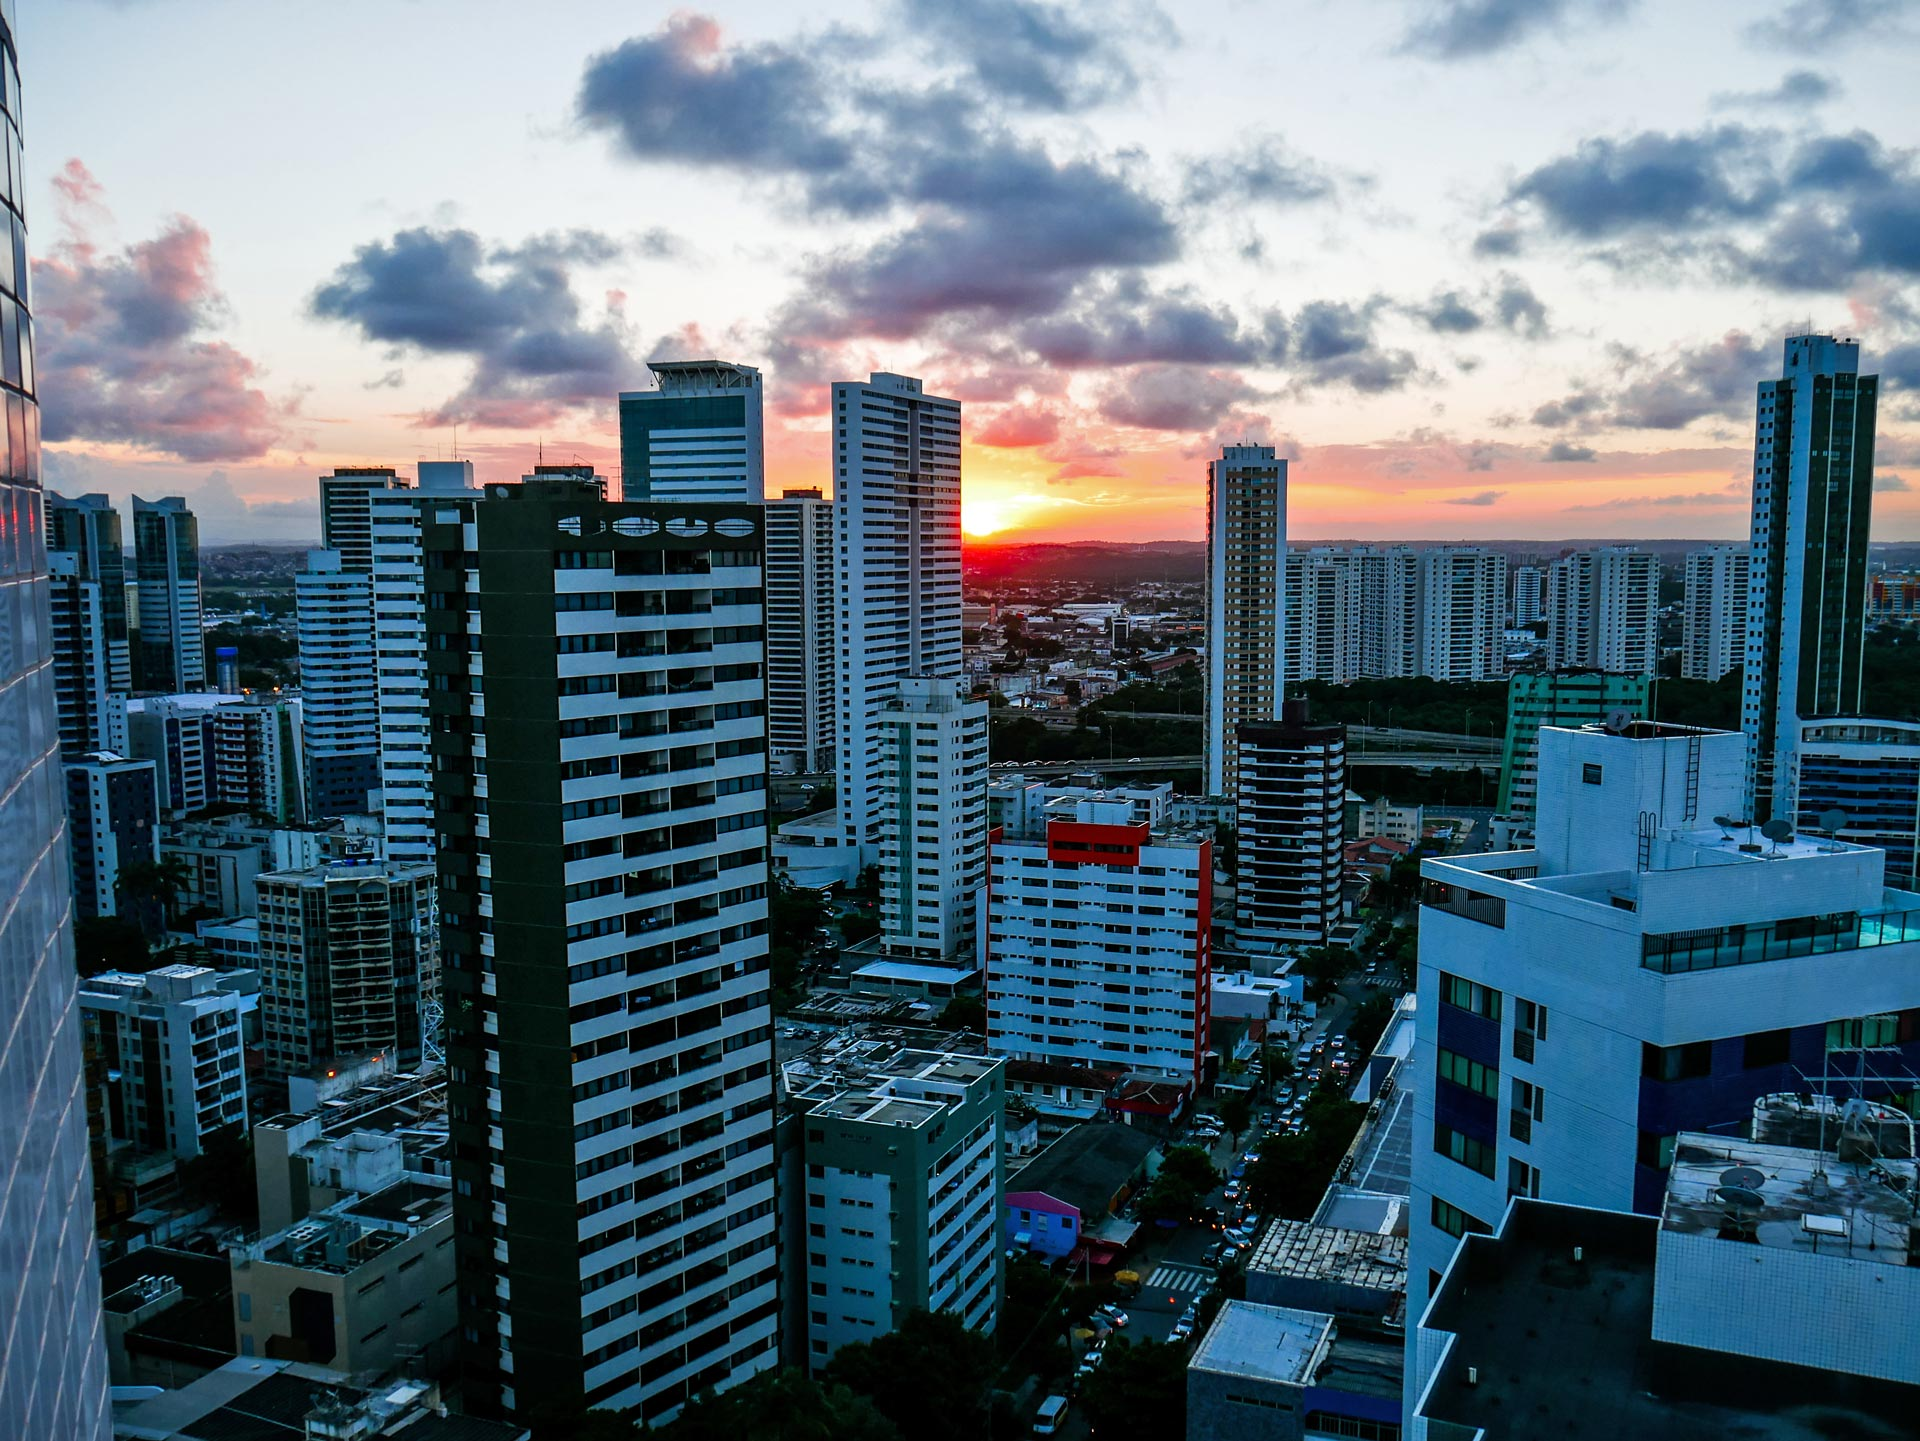 Sunset from rooftop terrace over Recife, Brazil